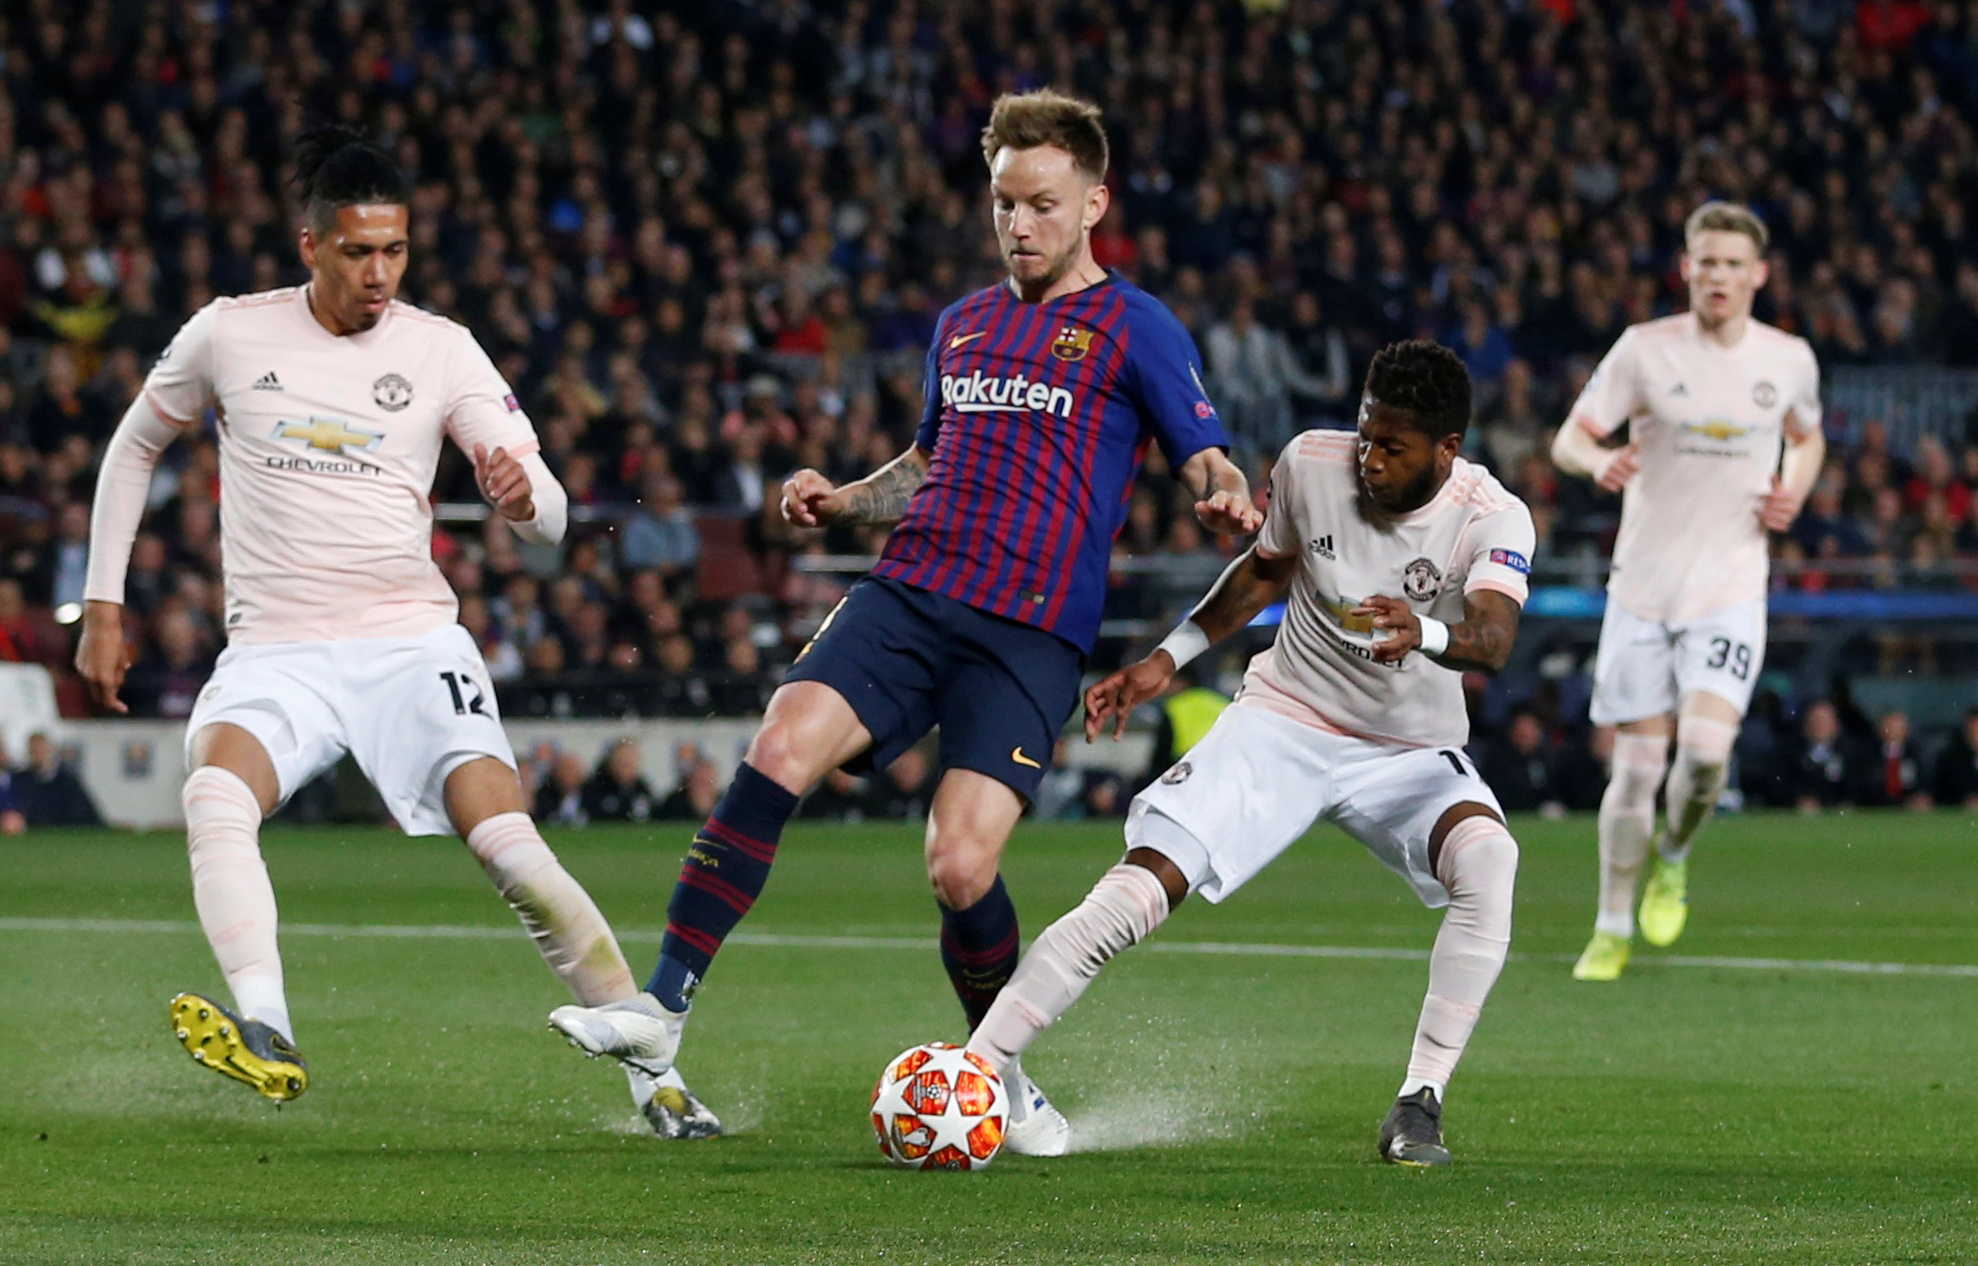 Soccer Football - Champions League Quarter Final Second Leg - FC Barcelona v Manchester United - Camp Nou, Barcelona, Spain - April 16, 2019  A penalty is awarded after this challenge from Manchester United's Fred on Barcelona's Ivan Rakitic before the decision is reversed after a VAR review   Action Images via Reuters/Carl Recine